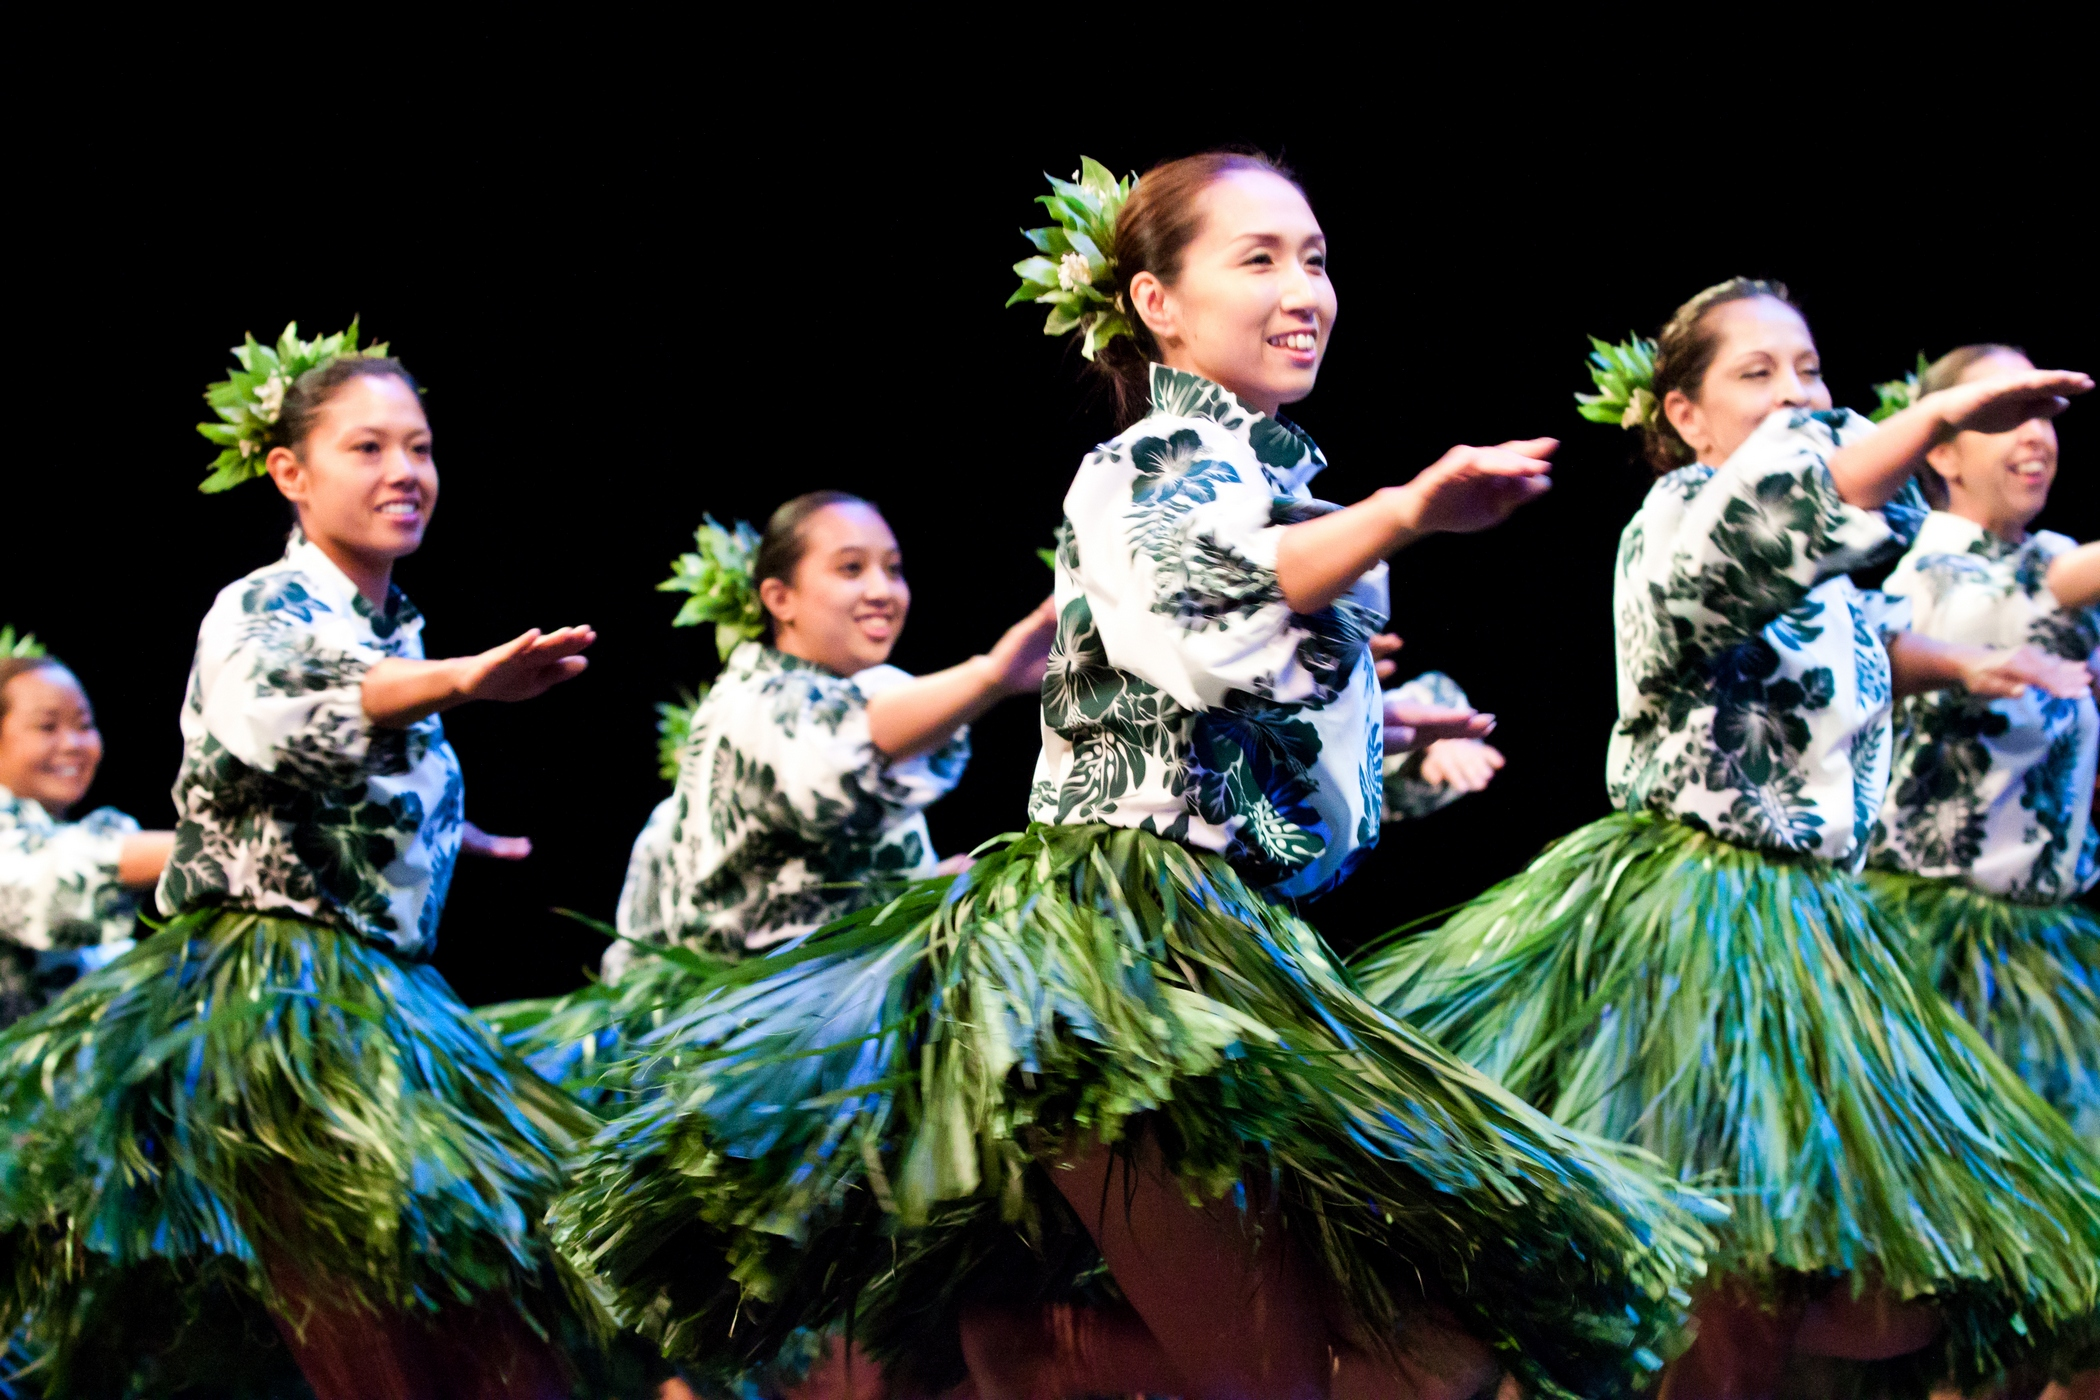 Ku Mai Ka Hula 2011 - Halau Na Pua Liko Wai Ho&#39;ola, Kumu Hula Junko Wong of Japan